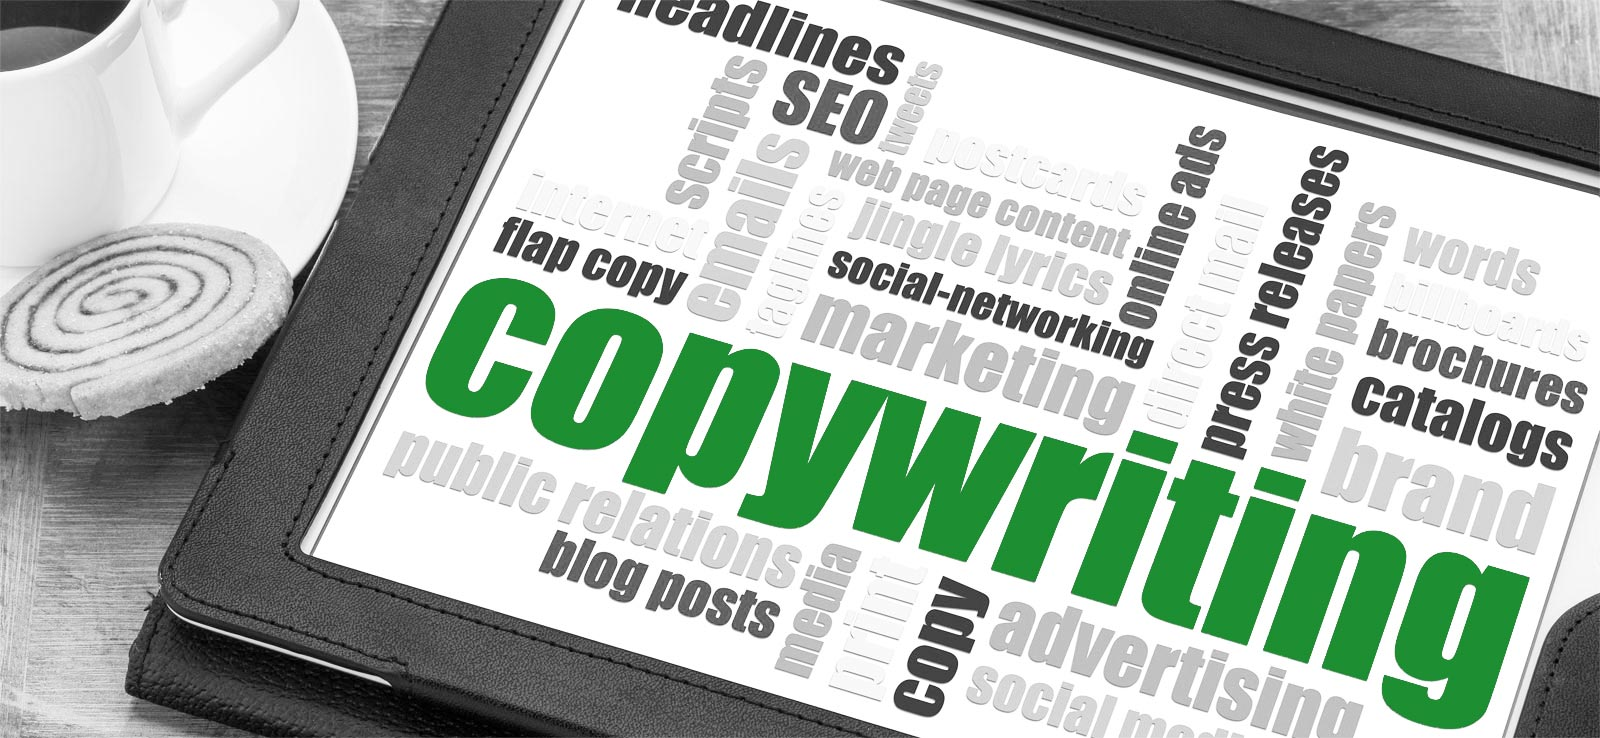 Copywriting and general writing service in Reading, Berkshire from Sabi Phagura